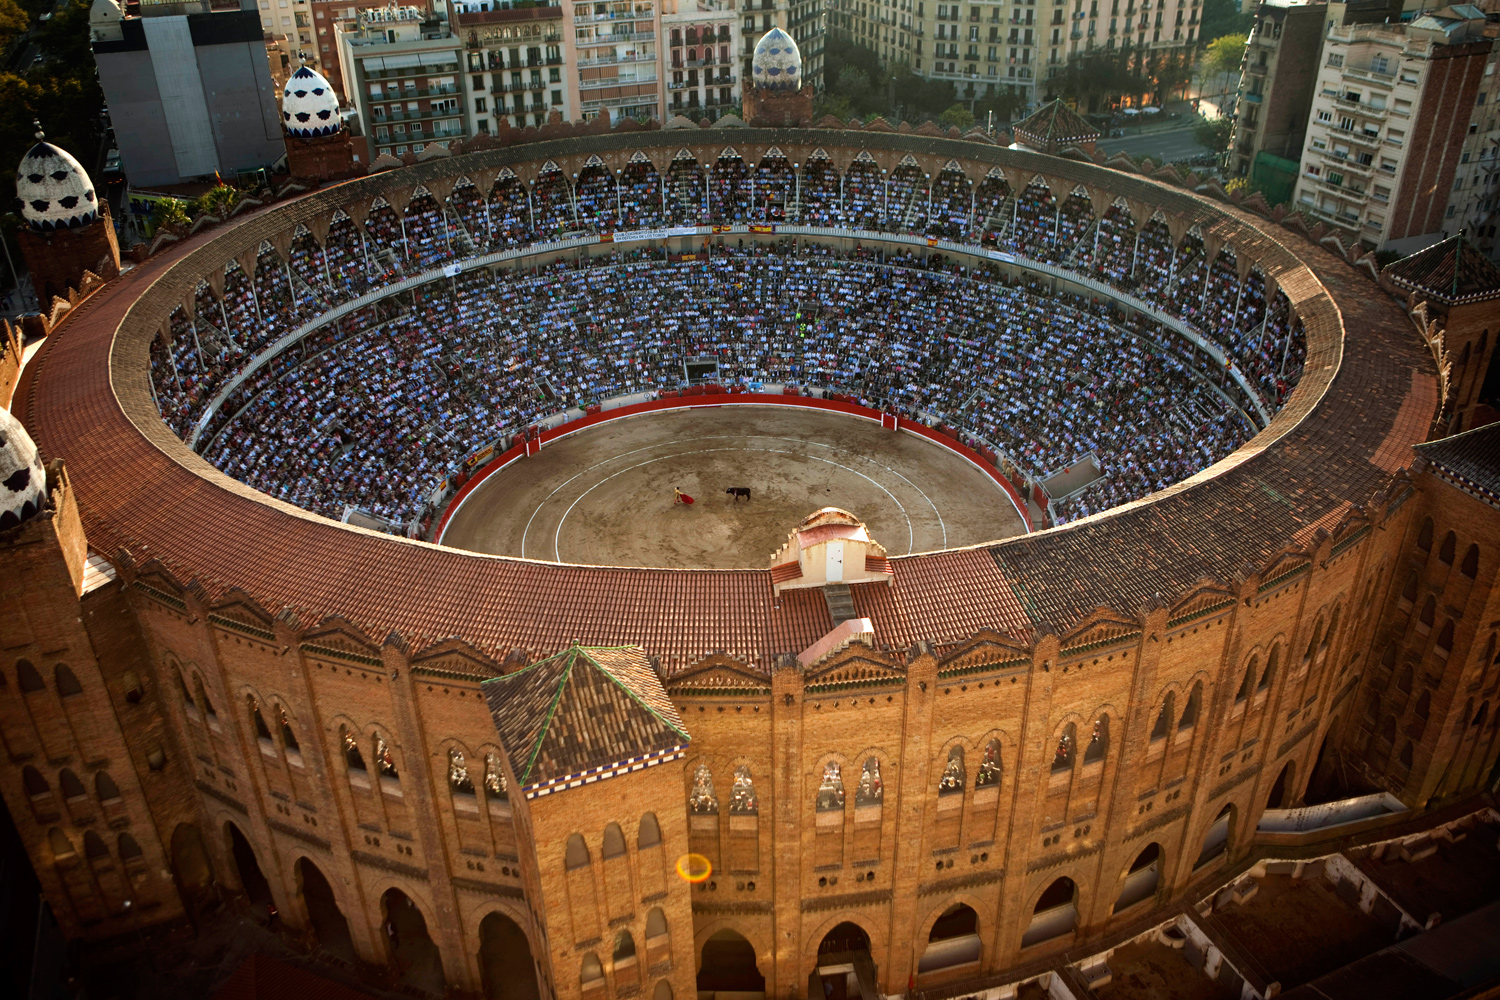 September 25, 2011. Spain's bullfighter Jose Tomas performs at the Monumental bullring in Barcelona, Spain. Spain's powerful northeastern region of Catalonia bid farewell this year to the country's emblematic tradition of bullfighting with a final bash at the Barcelona bullring.